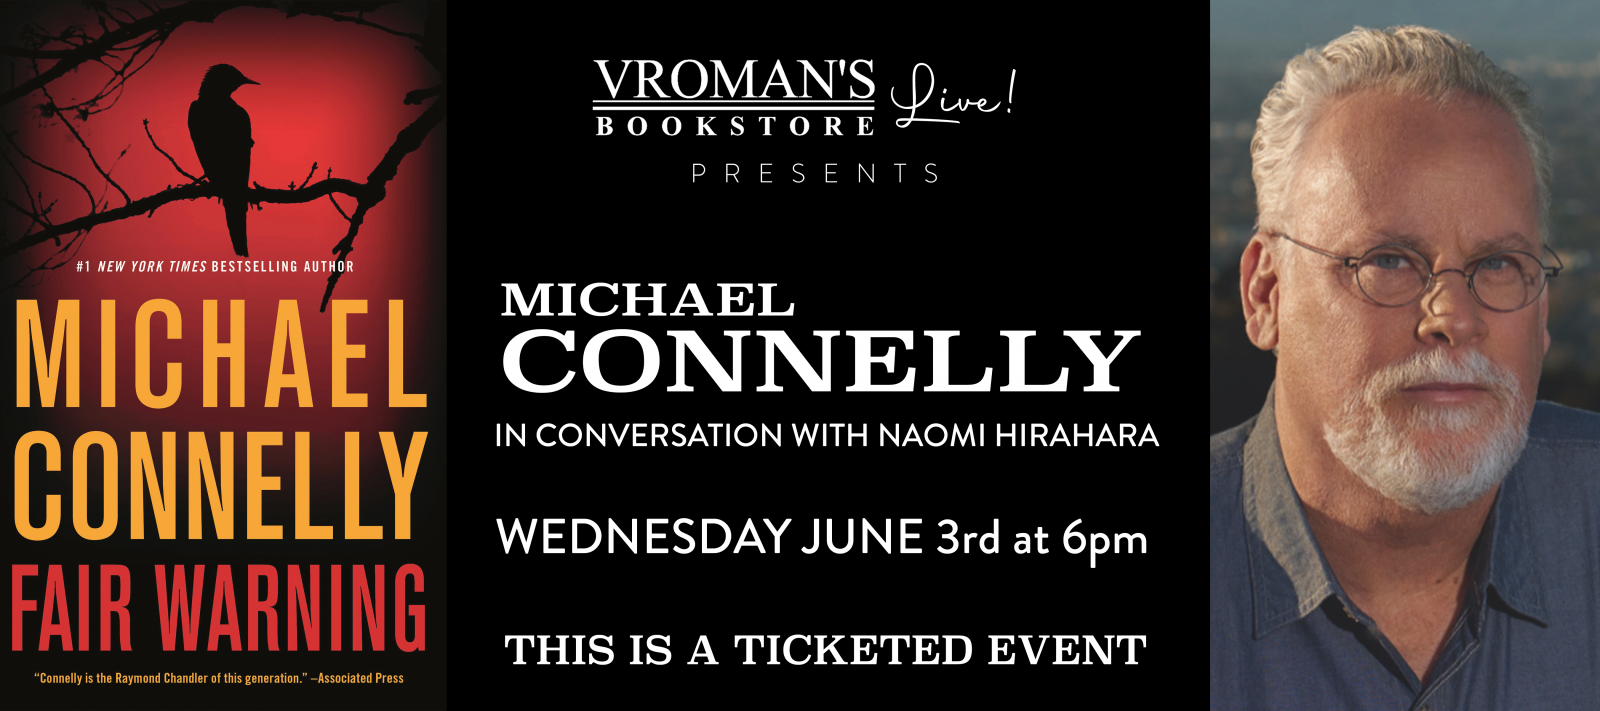 Vroman's Live presents Michael Connelly in conversation with Naomi Hirahara on Wednesday, June 3, at 6pm